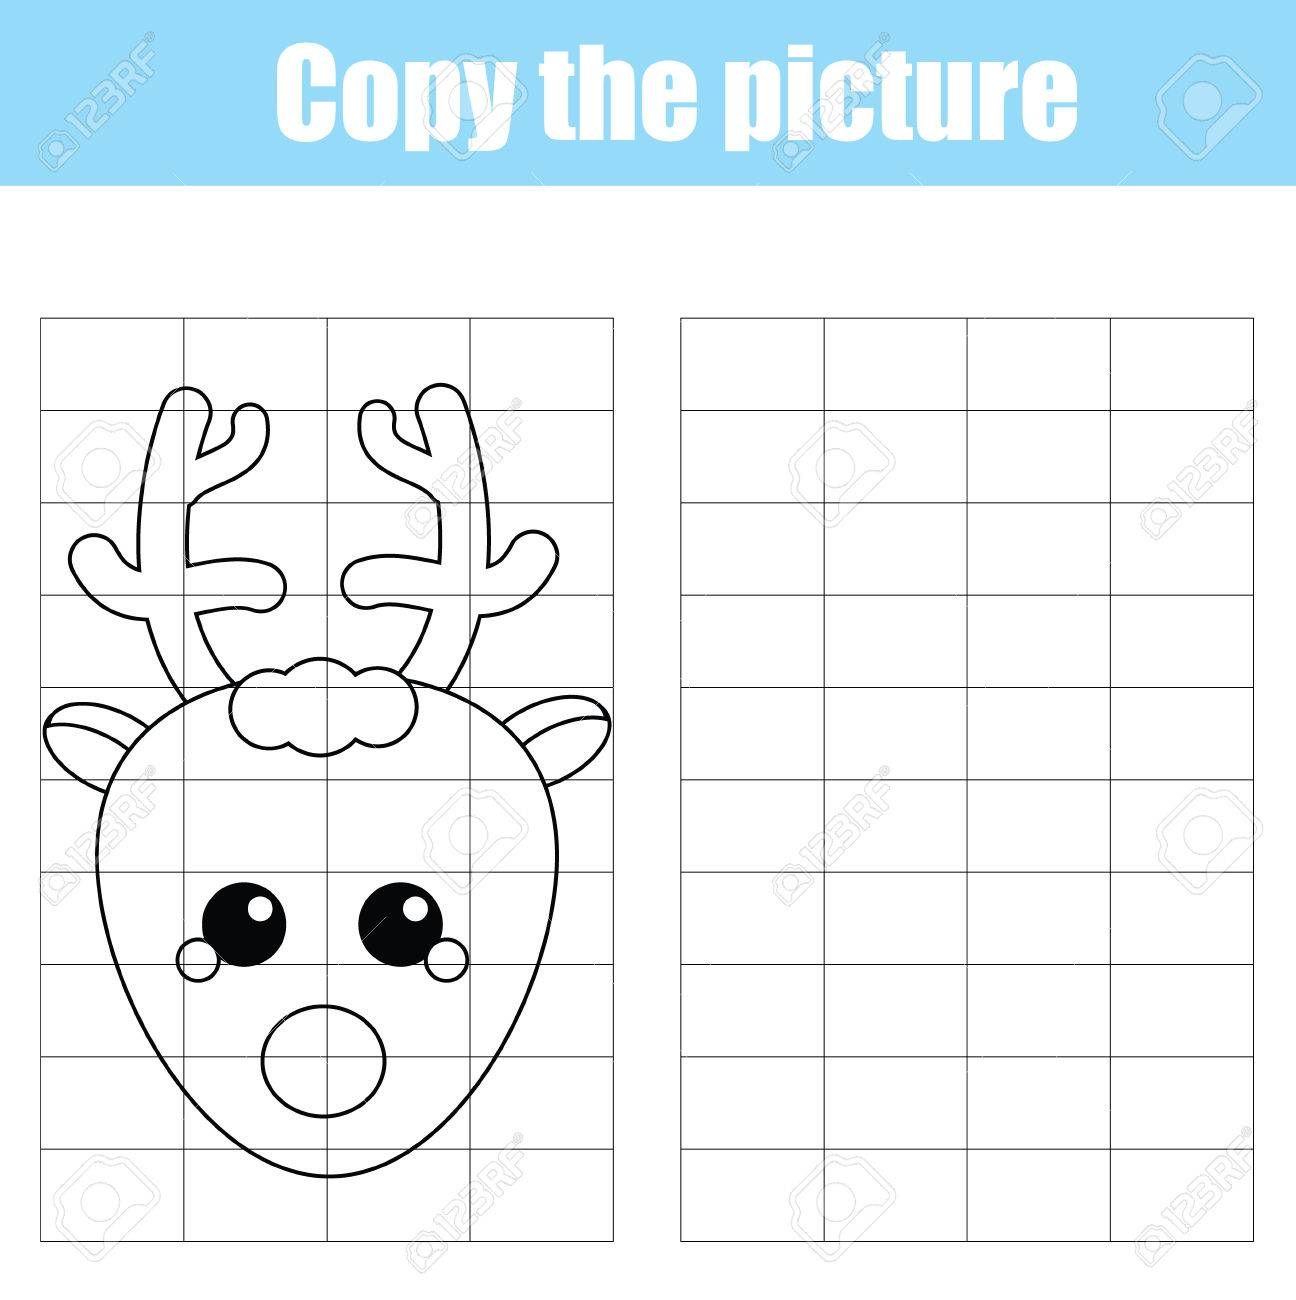 Copy The Picture Using A Grid Children Educational Drawing Game